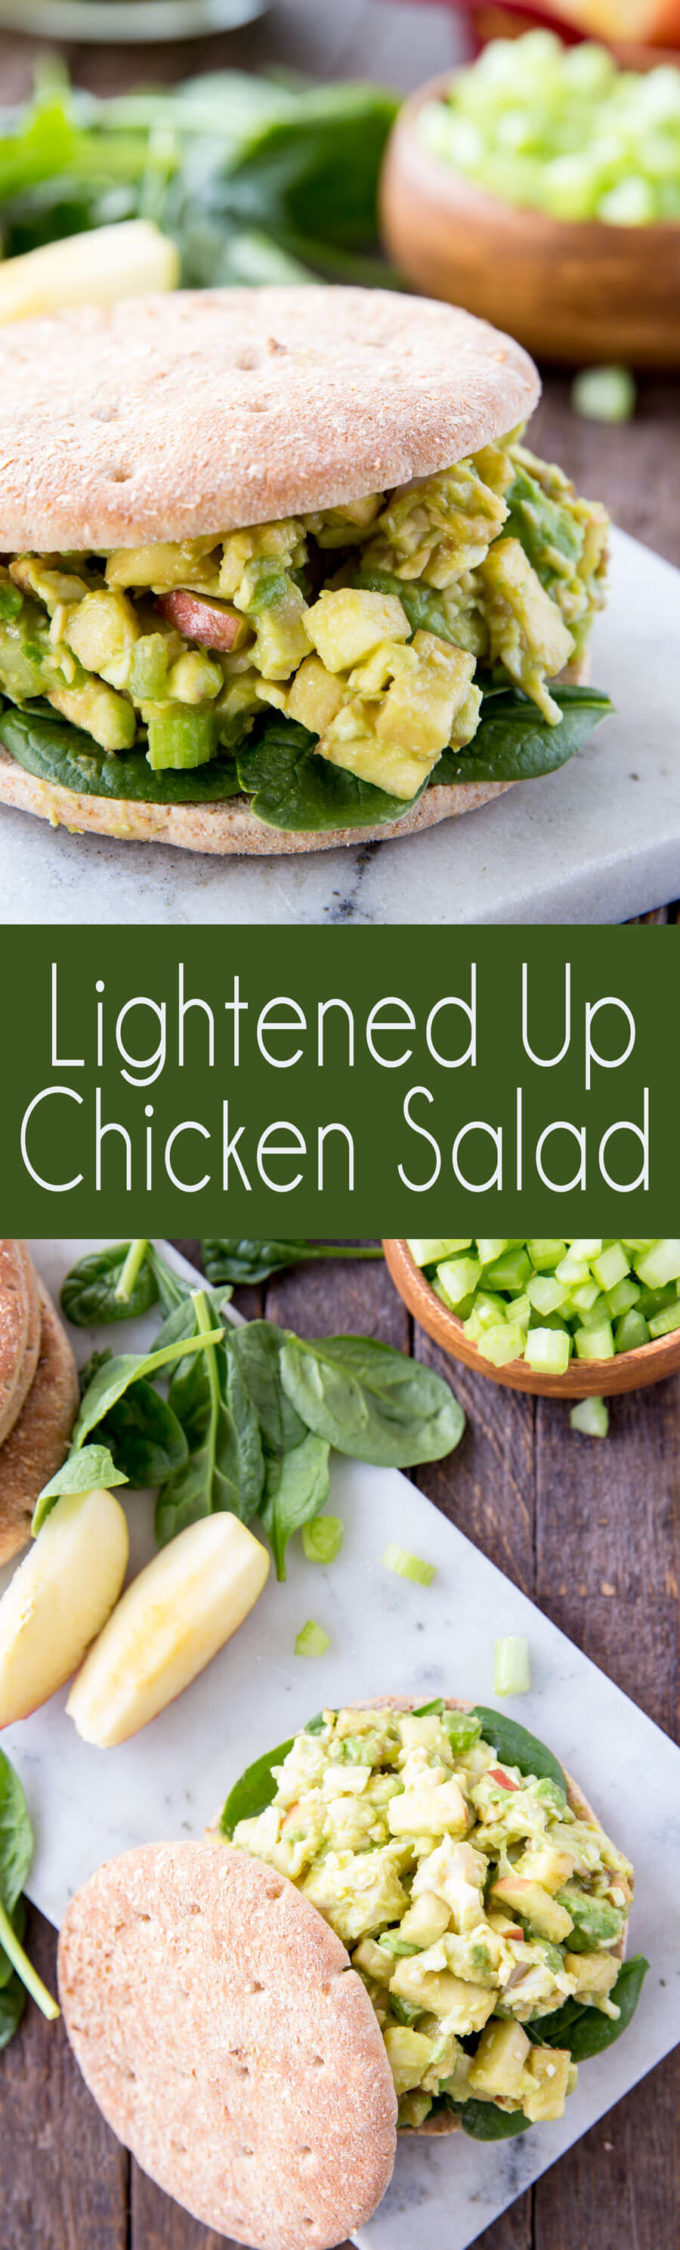 Lightened up chicken salad sandwiches with avocado